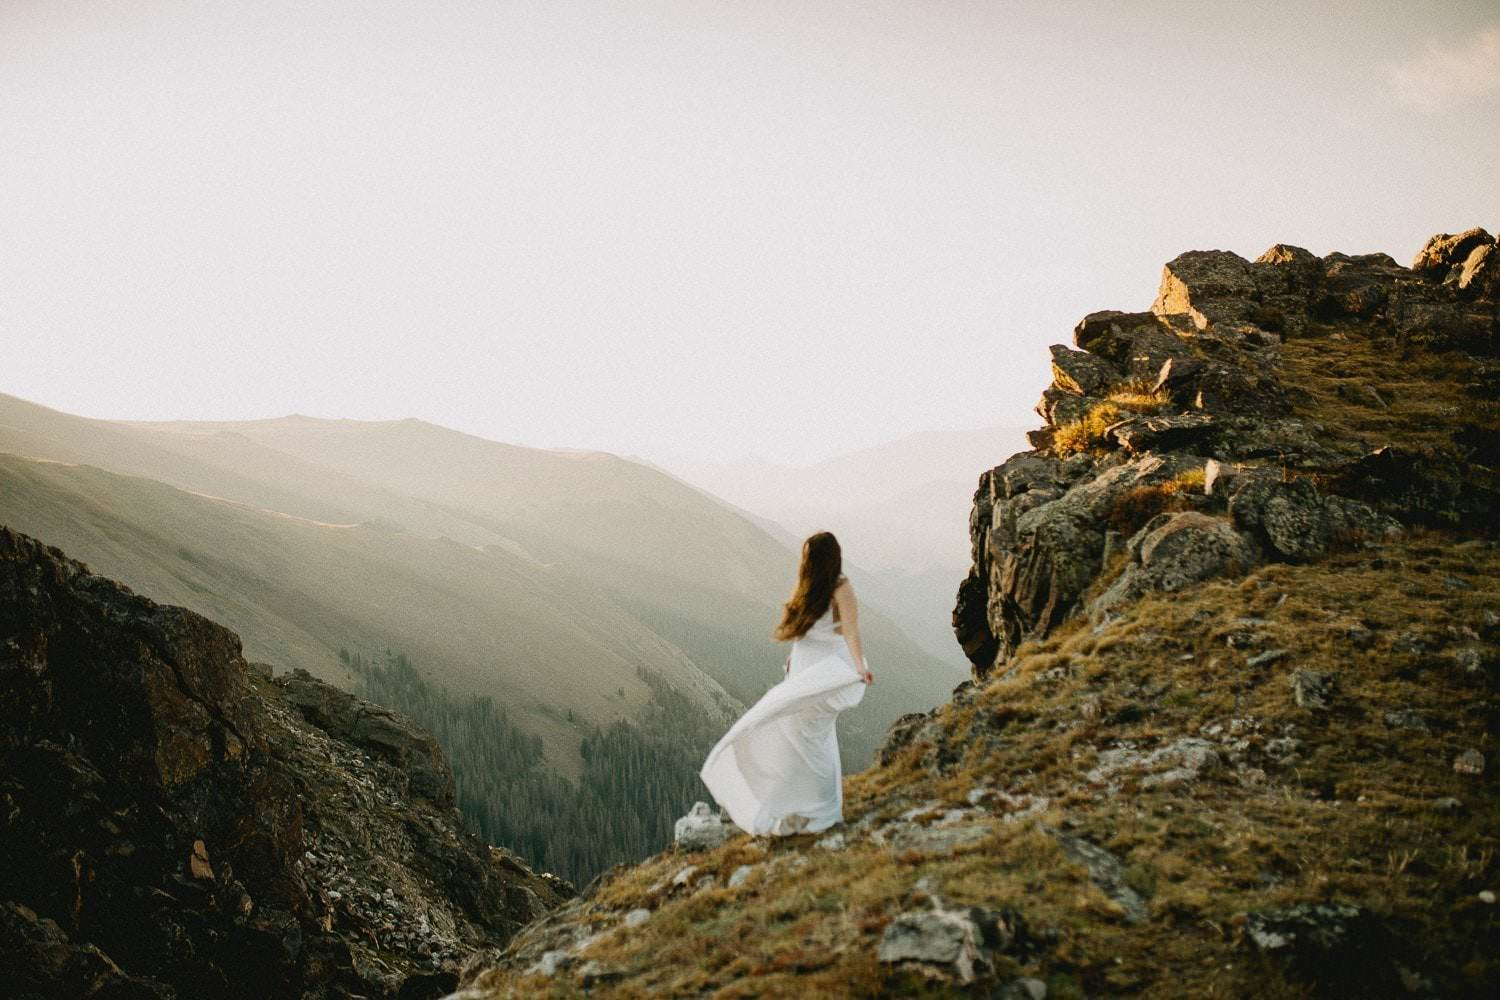 ROCKY MOUNTAIN ADVENTURE ELOPEMENT|ALPEN TUNDRA ELOPEMENT|DANA+JEFF|ROCKY MOUNTAIN NATIONAL PARK ADVENTURES | JUSTYNA E BUTLER PHOTOGRAPHY|ROCKY MOUNTAIN ADVENTURE ELOPEMENT PHOTOGRAPHER|DESTINATION ELOPEMENT PHOTOGRAPHER